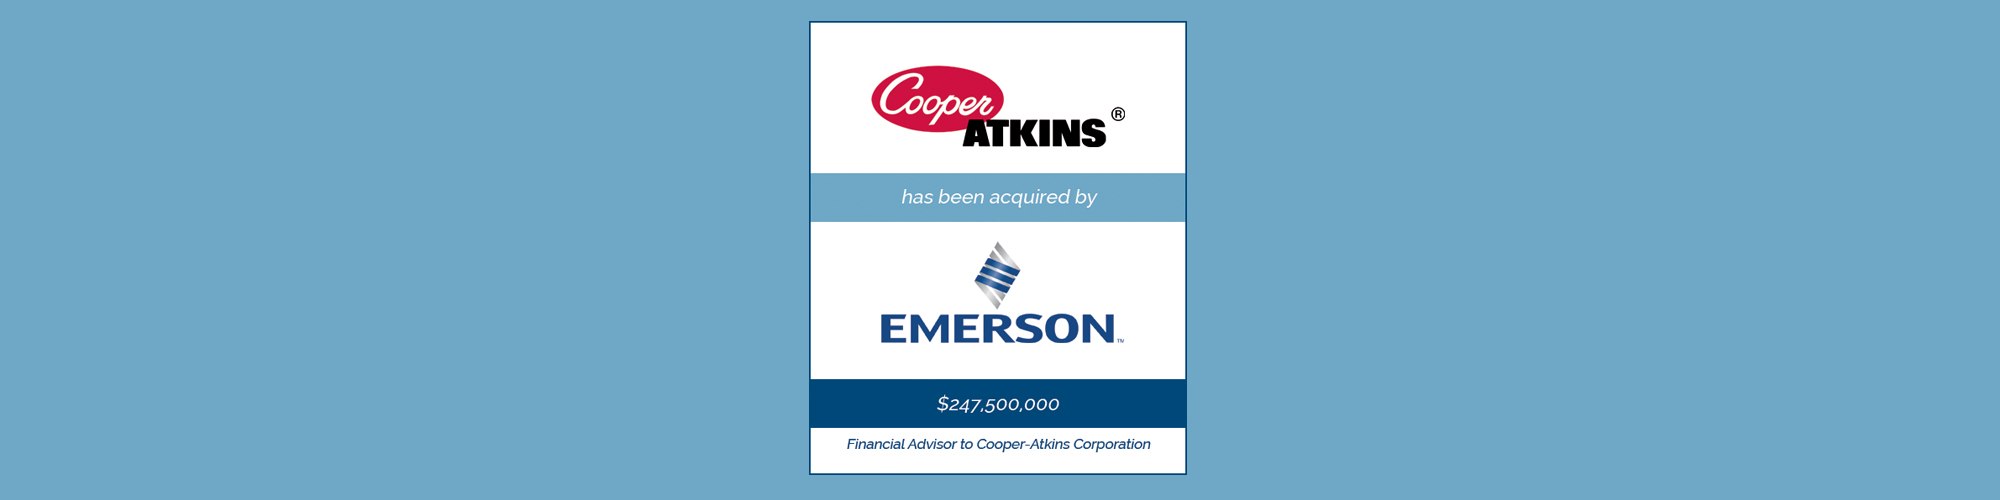 Cooper Atkins has been acquired by Emerson | Bailey Southwell & Co.